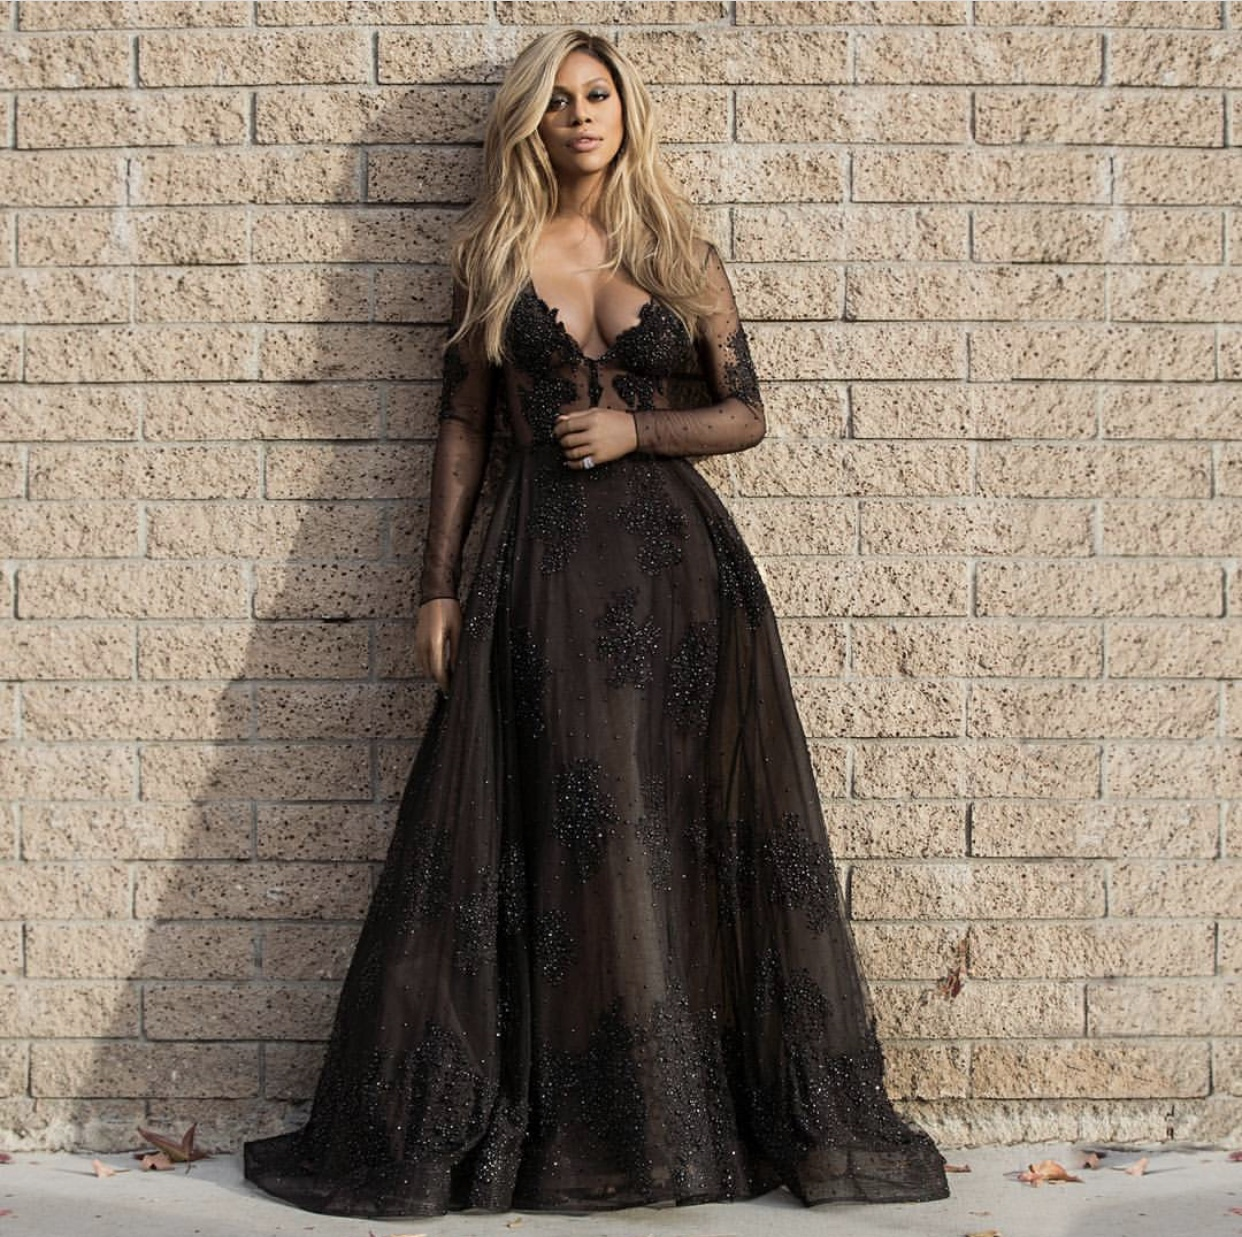 Laverne Cox wearing a bespoke Stella Nolasco GOWN at the Golden Globes on Sunday, January 7, 2018 in LOS ANGELES. -